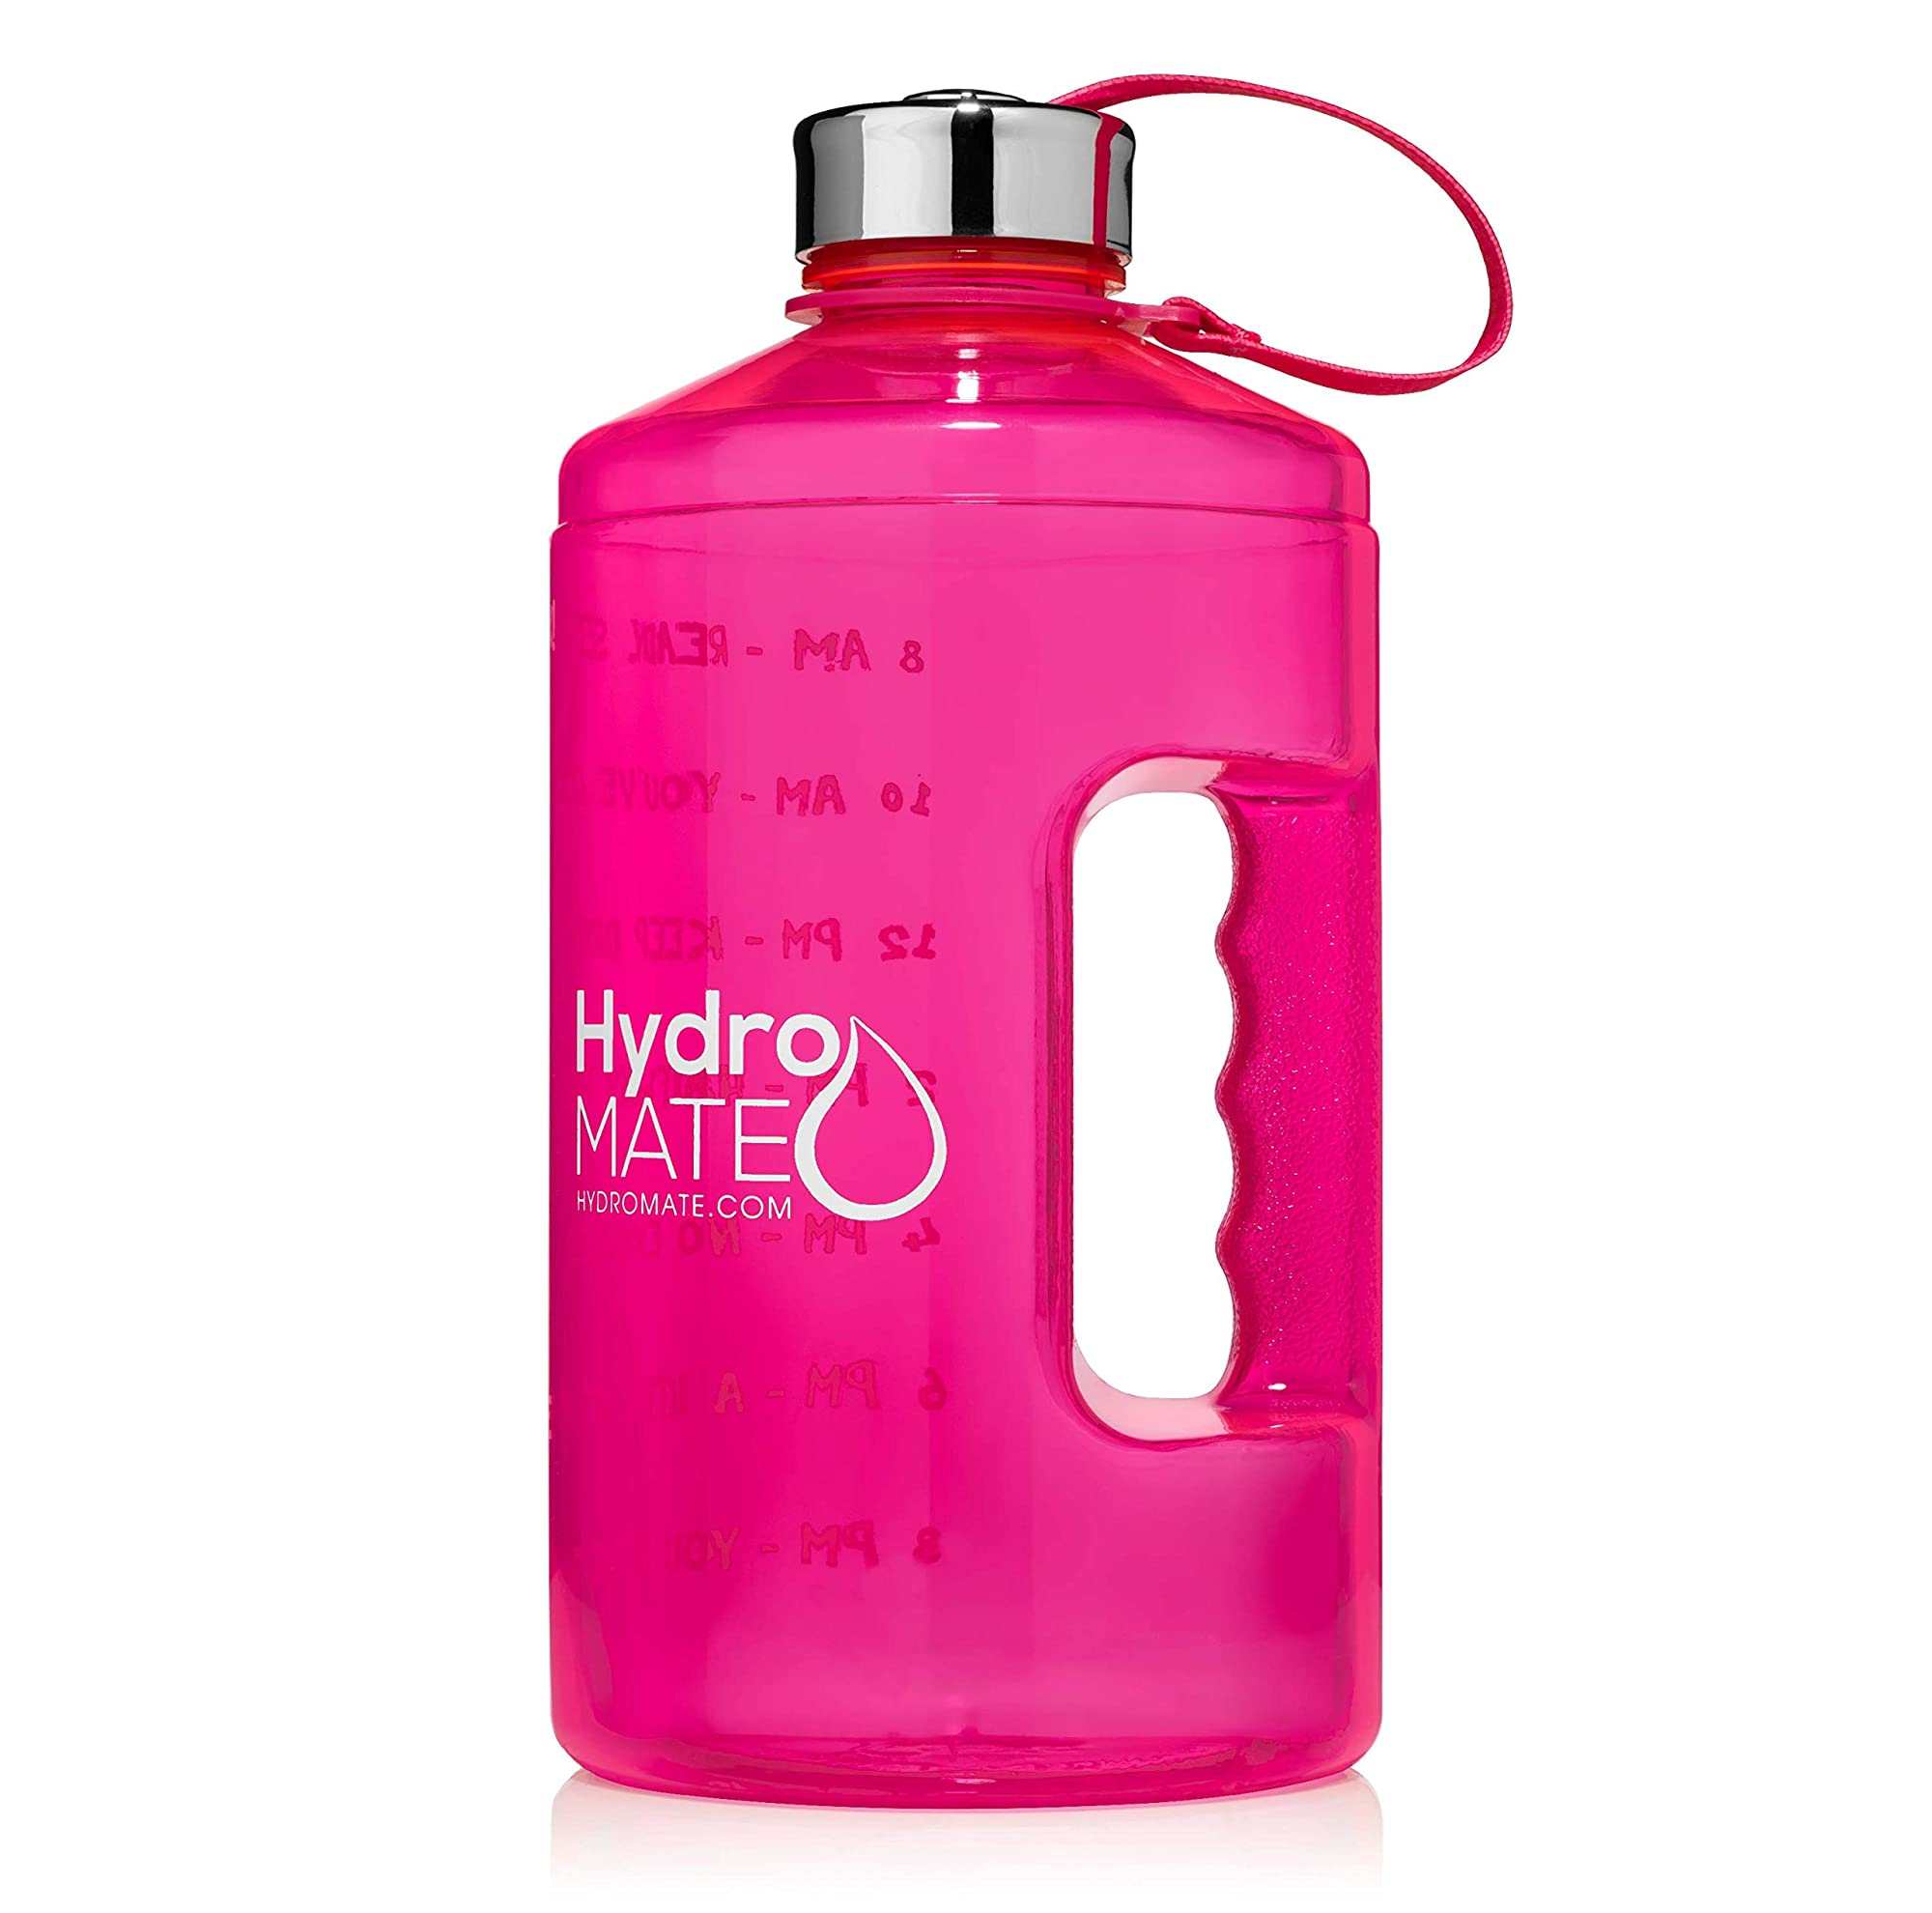 Leak Proof Large Water Bottle With Time Marker And An Ergonomic Handle